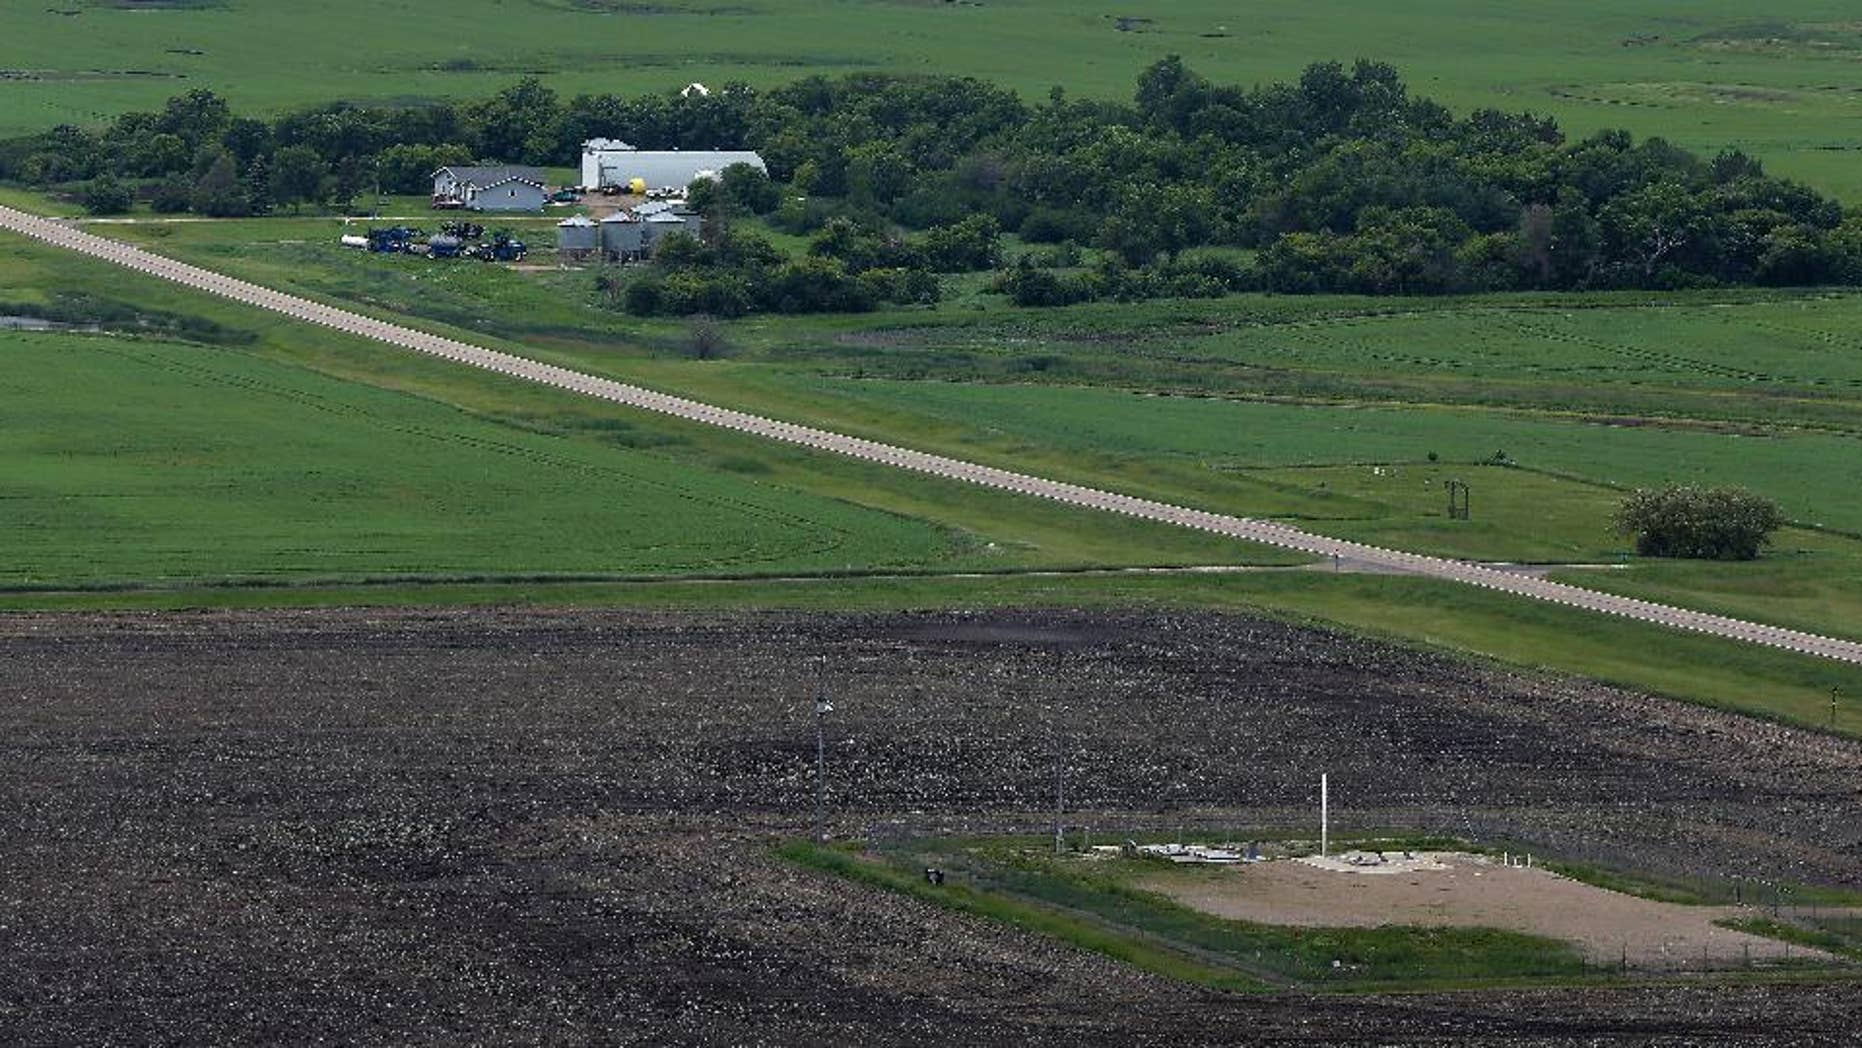 FILE - This June 24, 2014 file photo, shows an ICBM launch site located among fields and farms in the countryside outside Minot, N.D. The Air Force on Monday, Nov. 3, 2014, fired two more nuclear commanders and disciplined a third. The actions were confirmed to the Associated Press in response to an AP inquiry about an internal Air Force investigation of two commanders at the 91st Missile Wing at Minot Air Force Base, N.D., which also is responsible for 150 Minuteman 3 missiles. (AP Photo/Charlie Riedel, File)